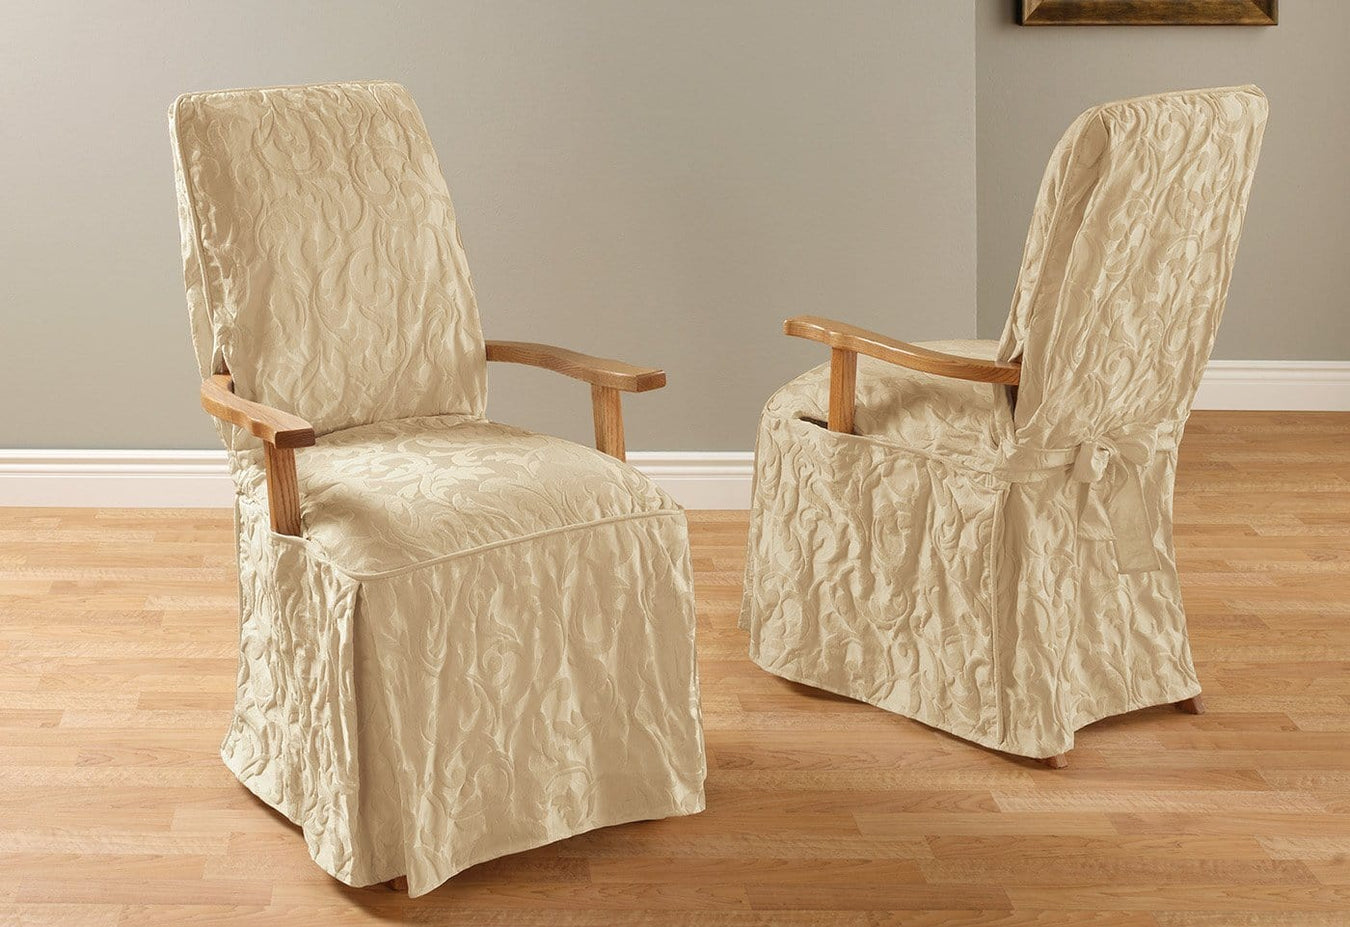 Home Furniture Diy Classic Dining Chair Cover Beige Damask Matelasse Upholstery Tie Back Cott Poly Gronn Com Br